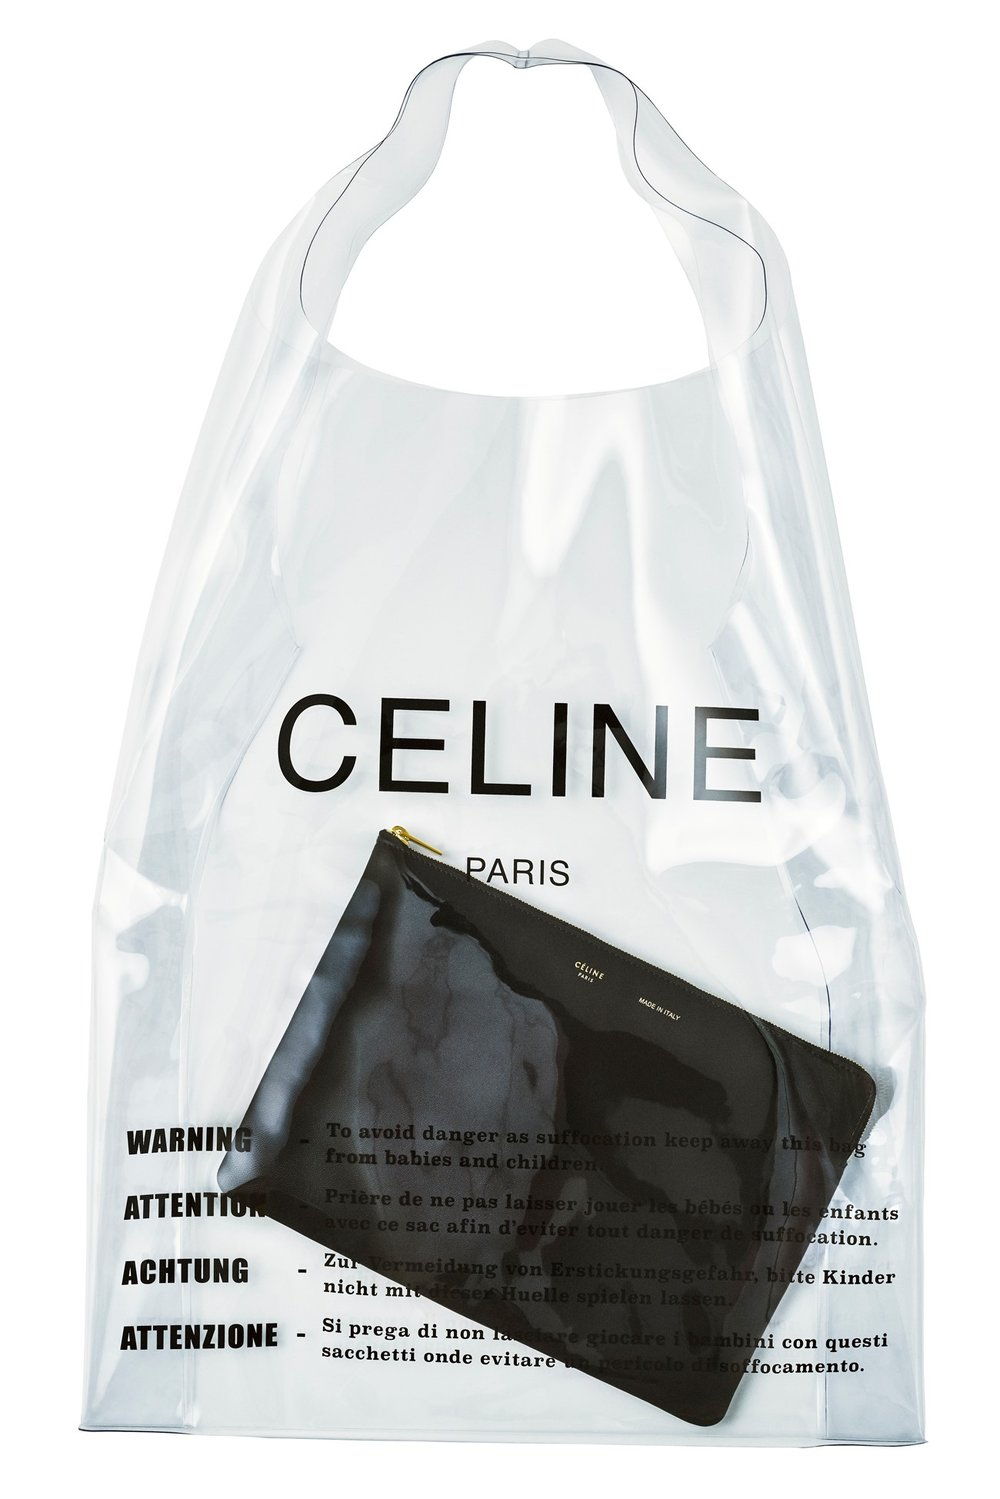 Céline - I've had this plastic bag (with the leather pouch) for a few months now and I am continually amazed at how functional and versatile it really is.